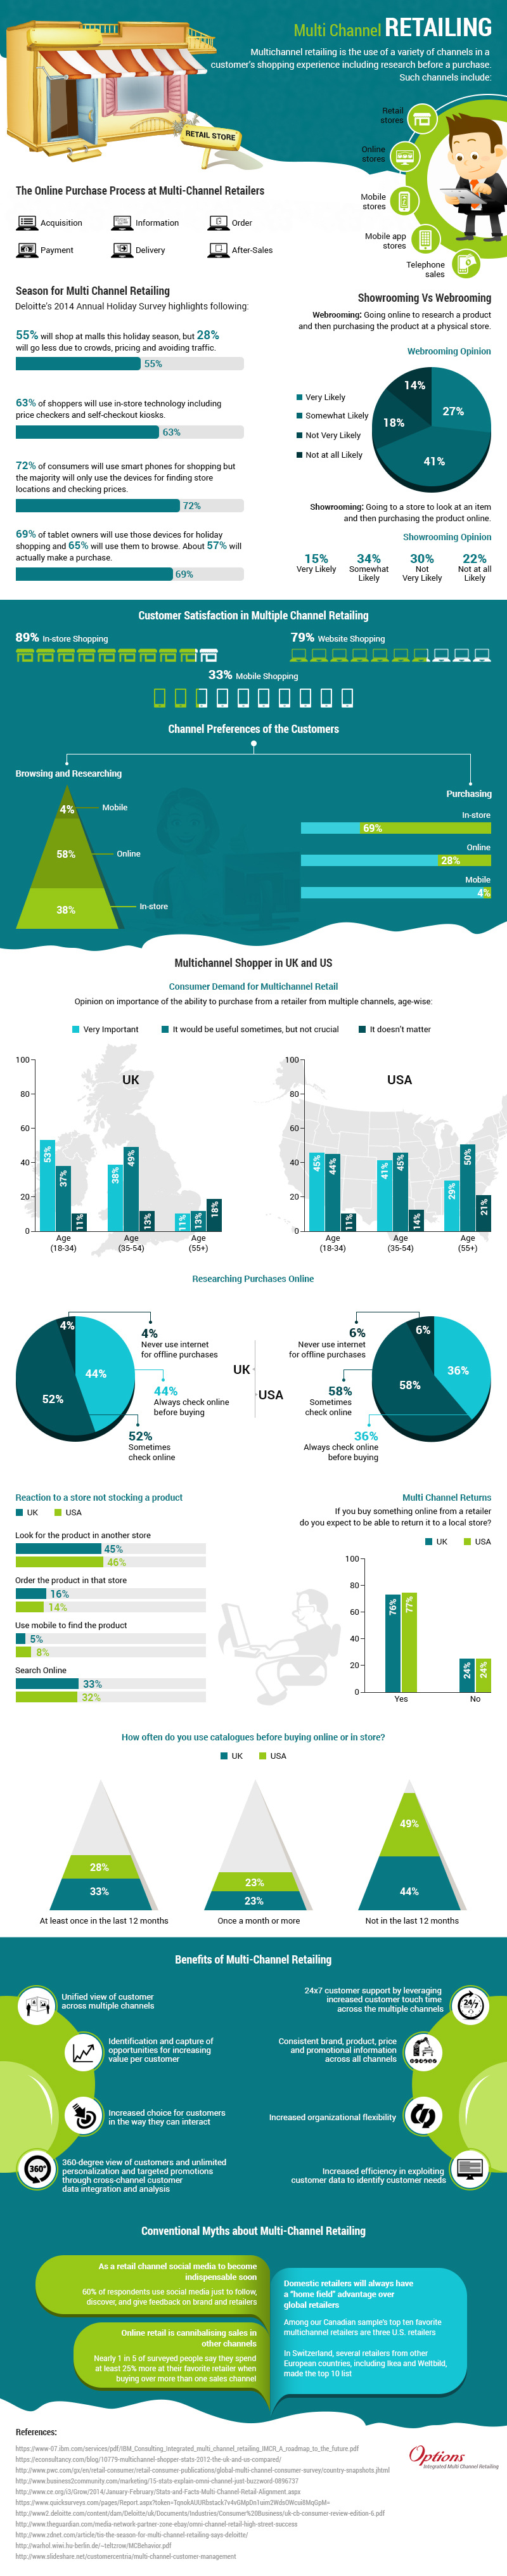 WHY YOU NEED A MULTICHANNEL RETAIL STRATEGY-INFOGRAPHIC